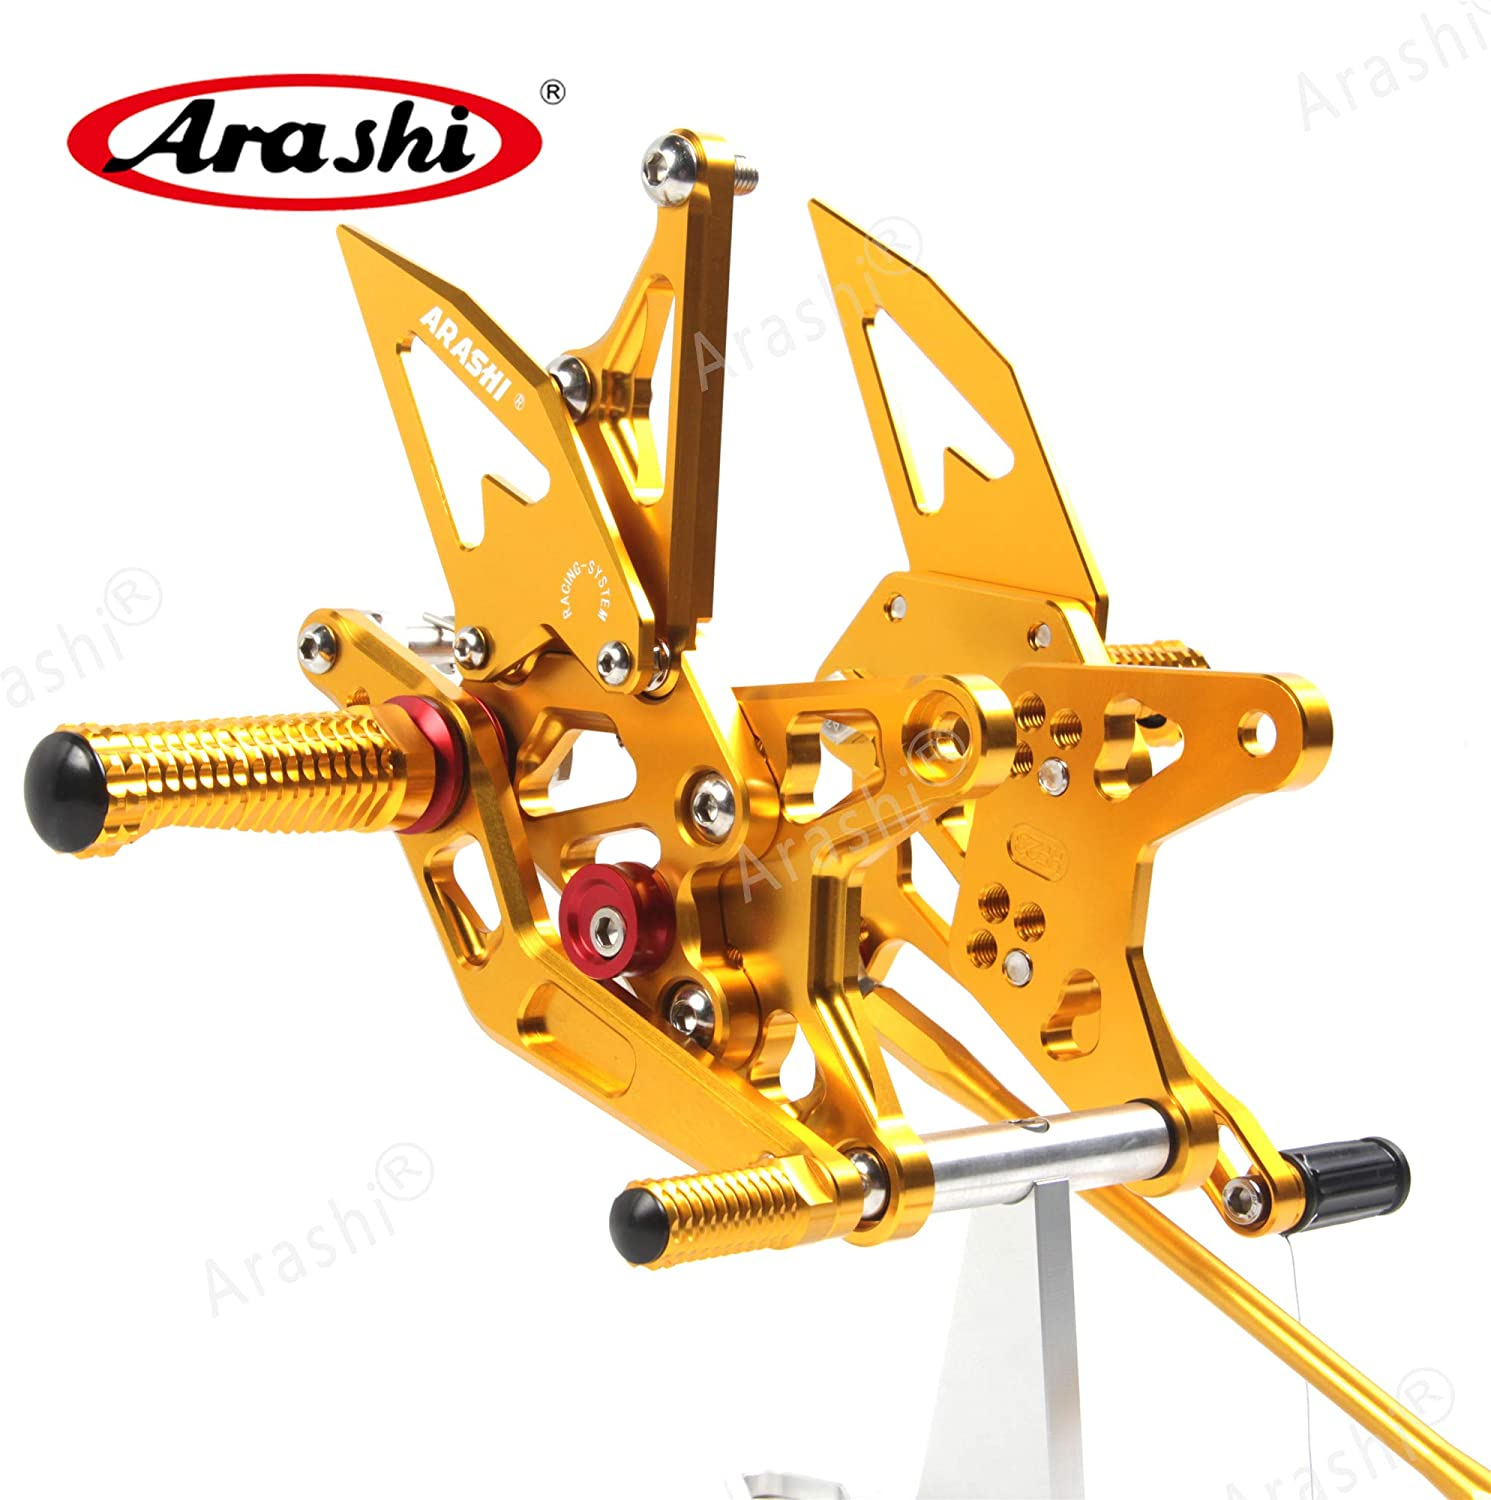 Version 2.0 Rearsets for Kawasaki Ninja ZX6R ZX636 2009-2014 Motorcycle Accessories Adjustable Footrests Foot Peg Rear Sets ZX-6R ZX-636 Gold Arashi